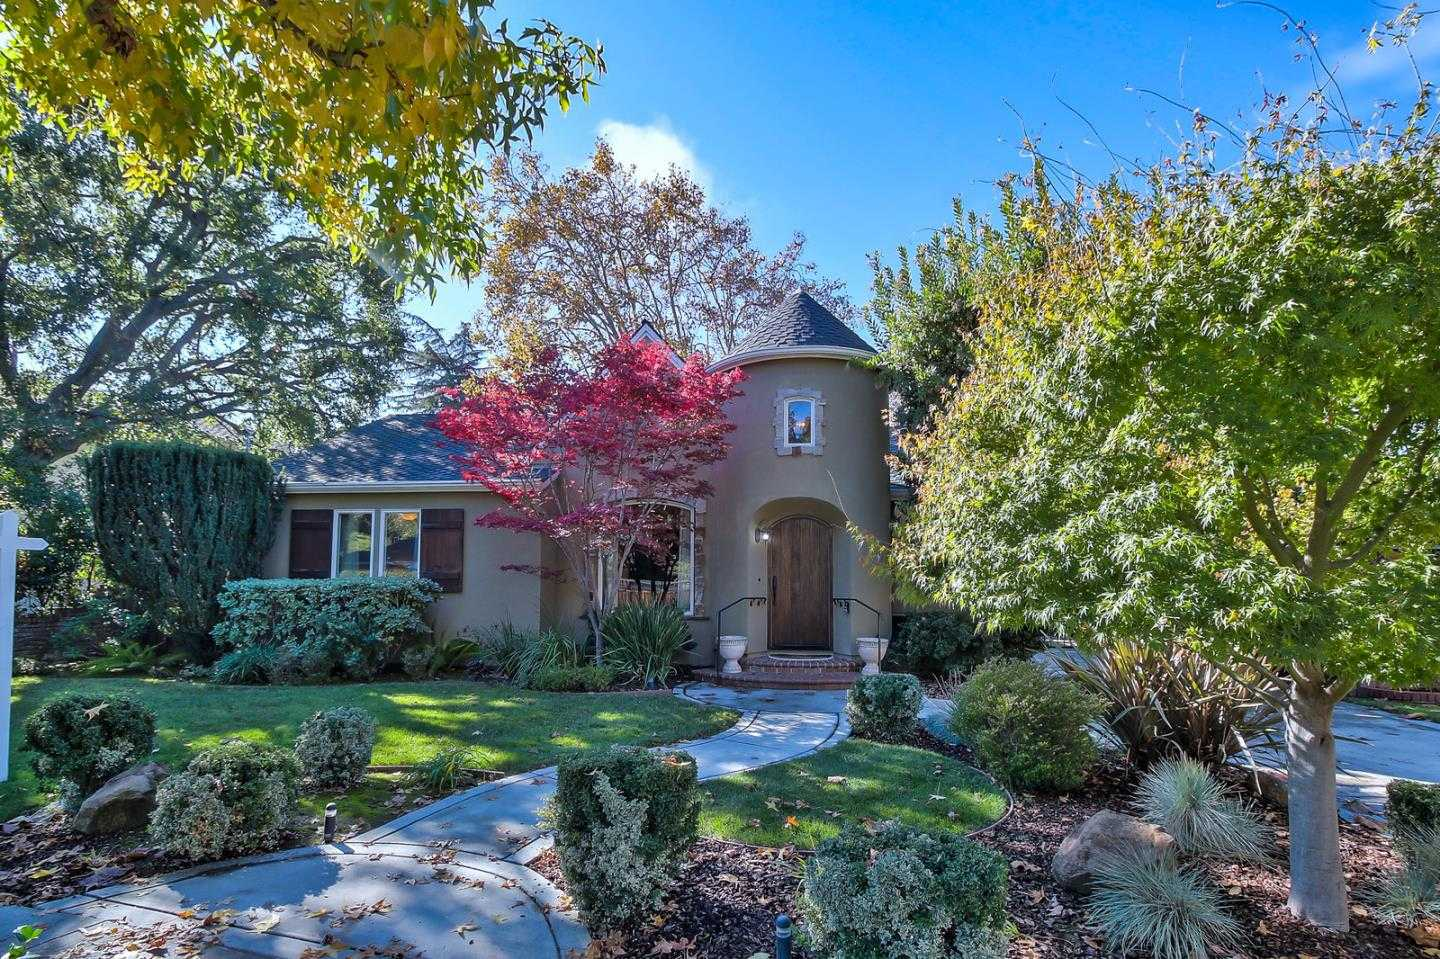 $1,599,000 - 2Br/2Ba -  for Sale in San Jose